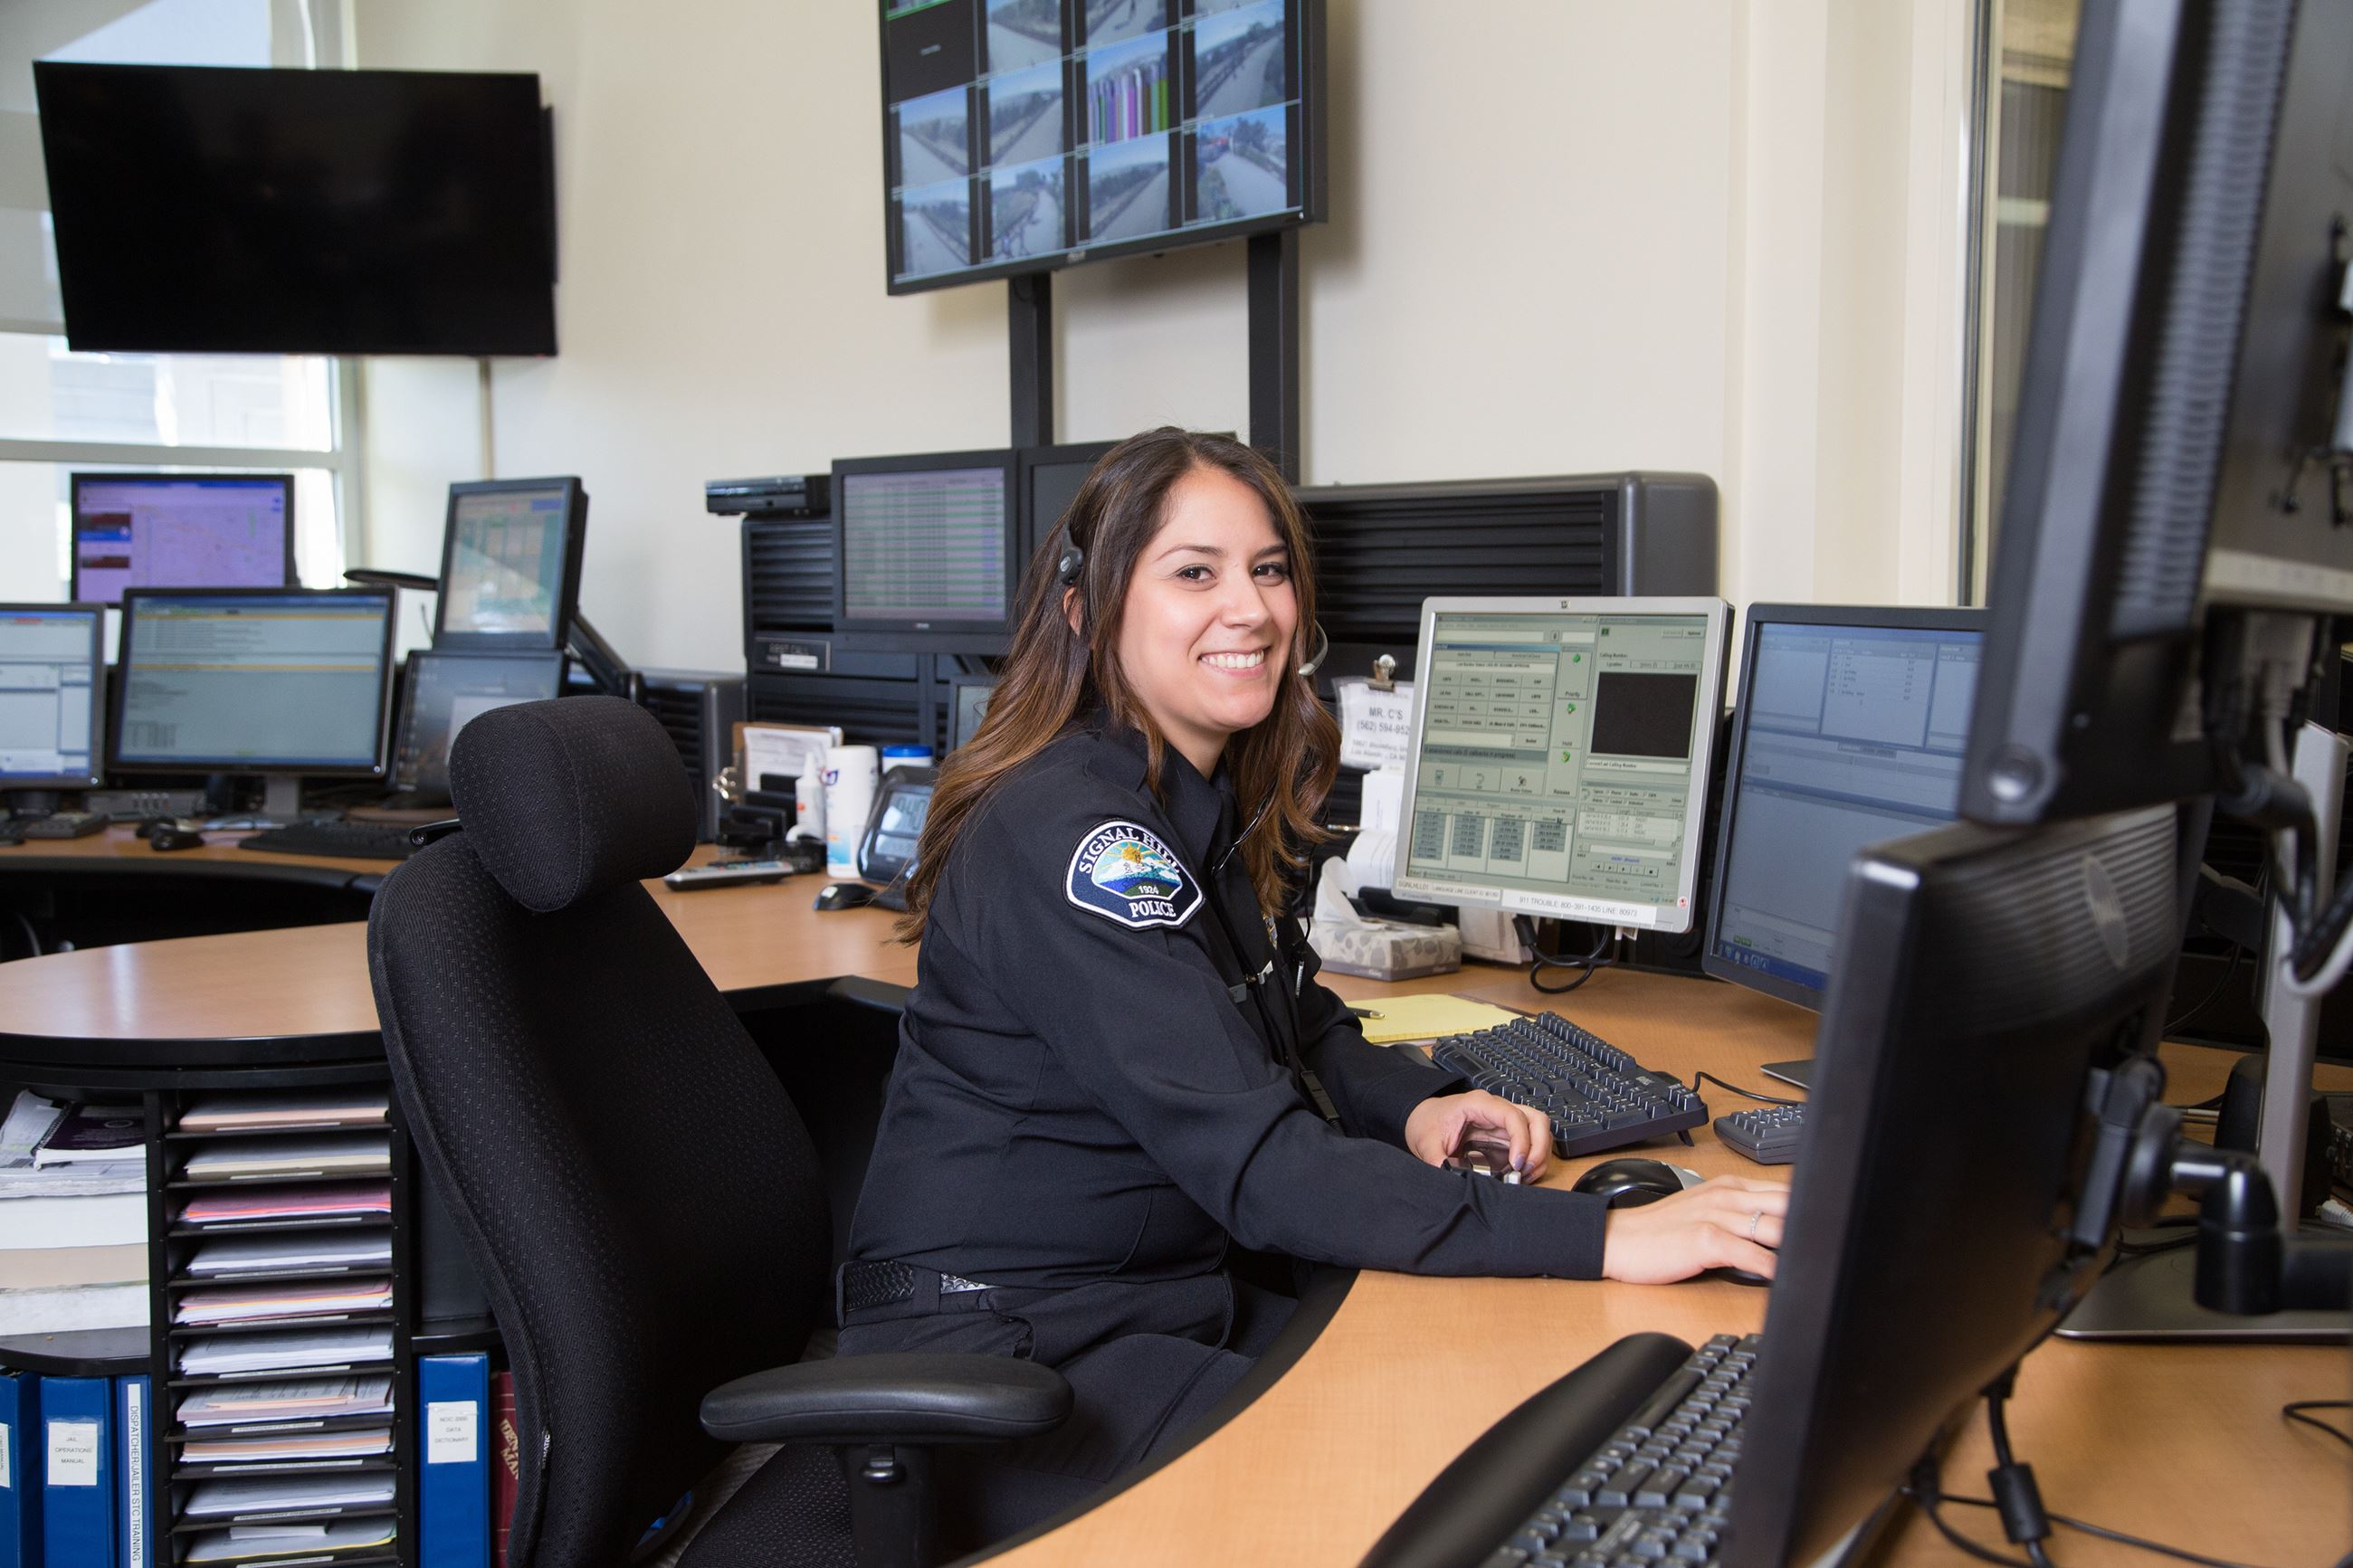 Smiling police dispatcher at a desk with a headset on